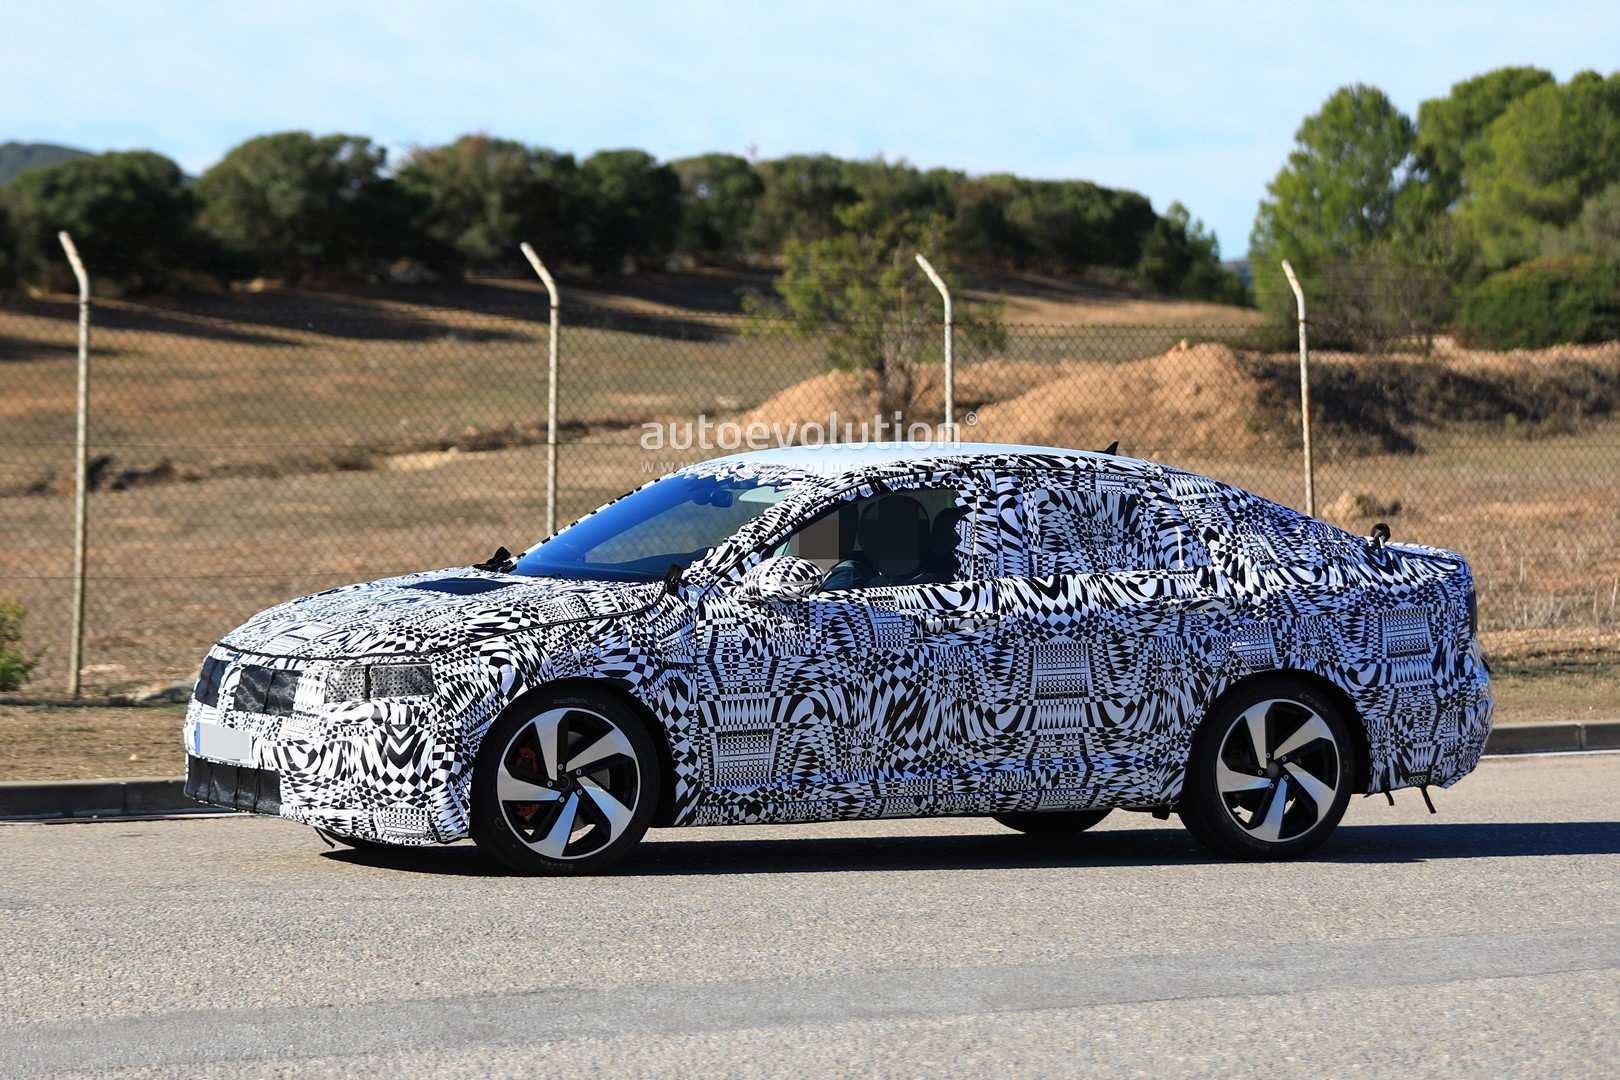 40 Concept of 2019 Vw Jetta Spy Shots Release Date with 2019 Vw Jetta Spy Shots